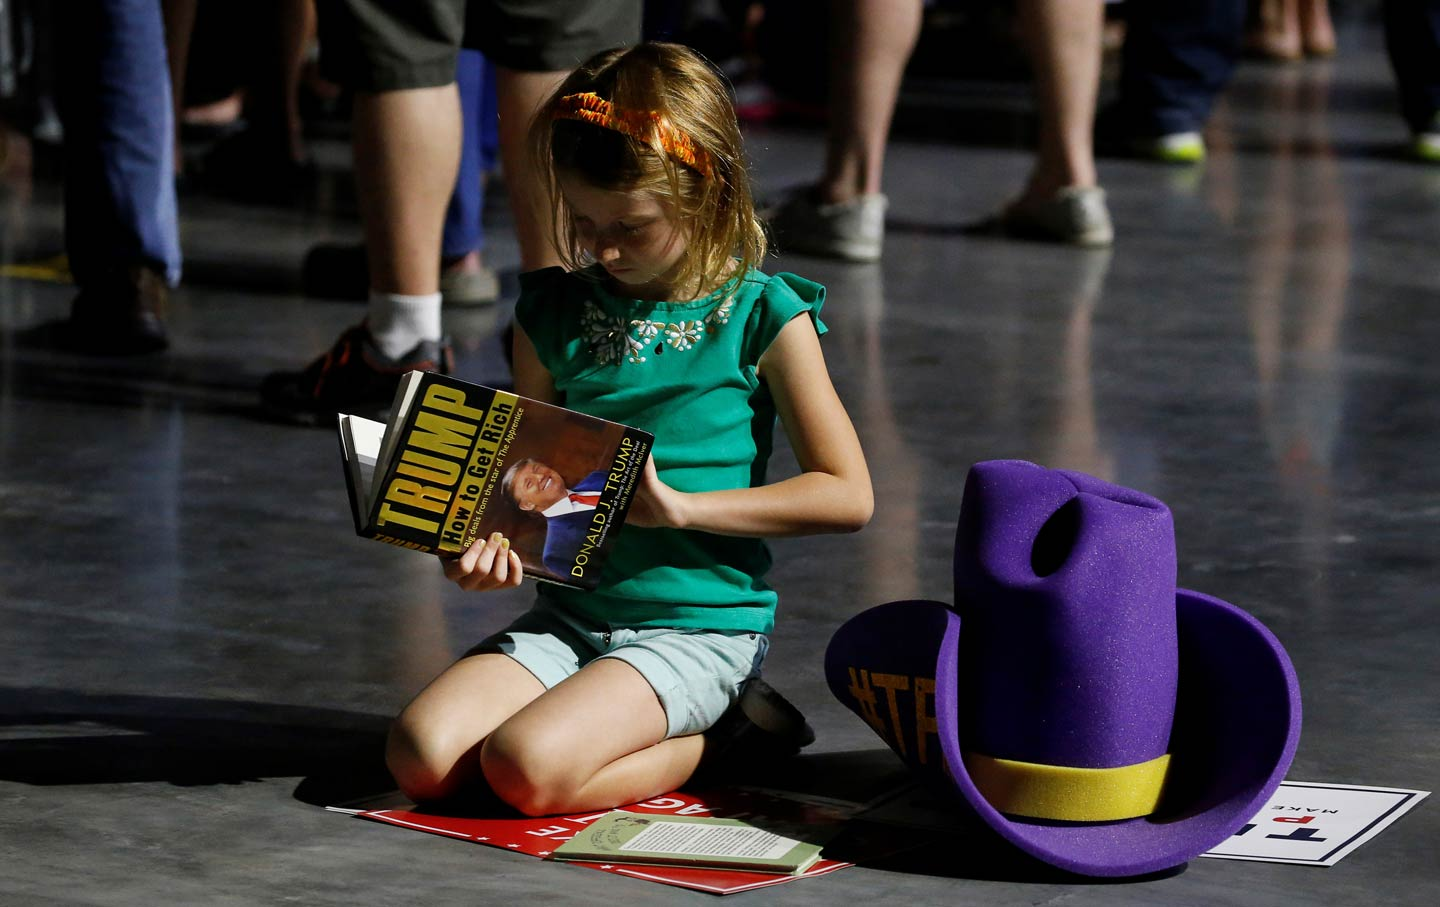 Donald Trump Has Unleashed A New Wave Of Bullying In Schools  The  Hollie Age  Leafs Through A Copy Of Trump How To Get Rich As She Waits  For The Start Of A Trump Rally In Roanoke Virginia On September